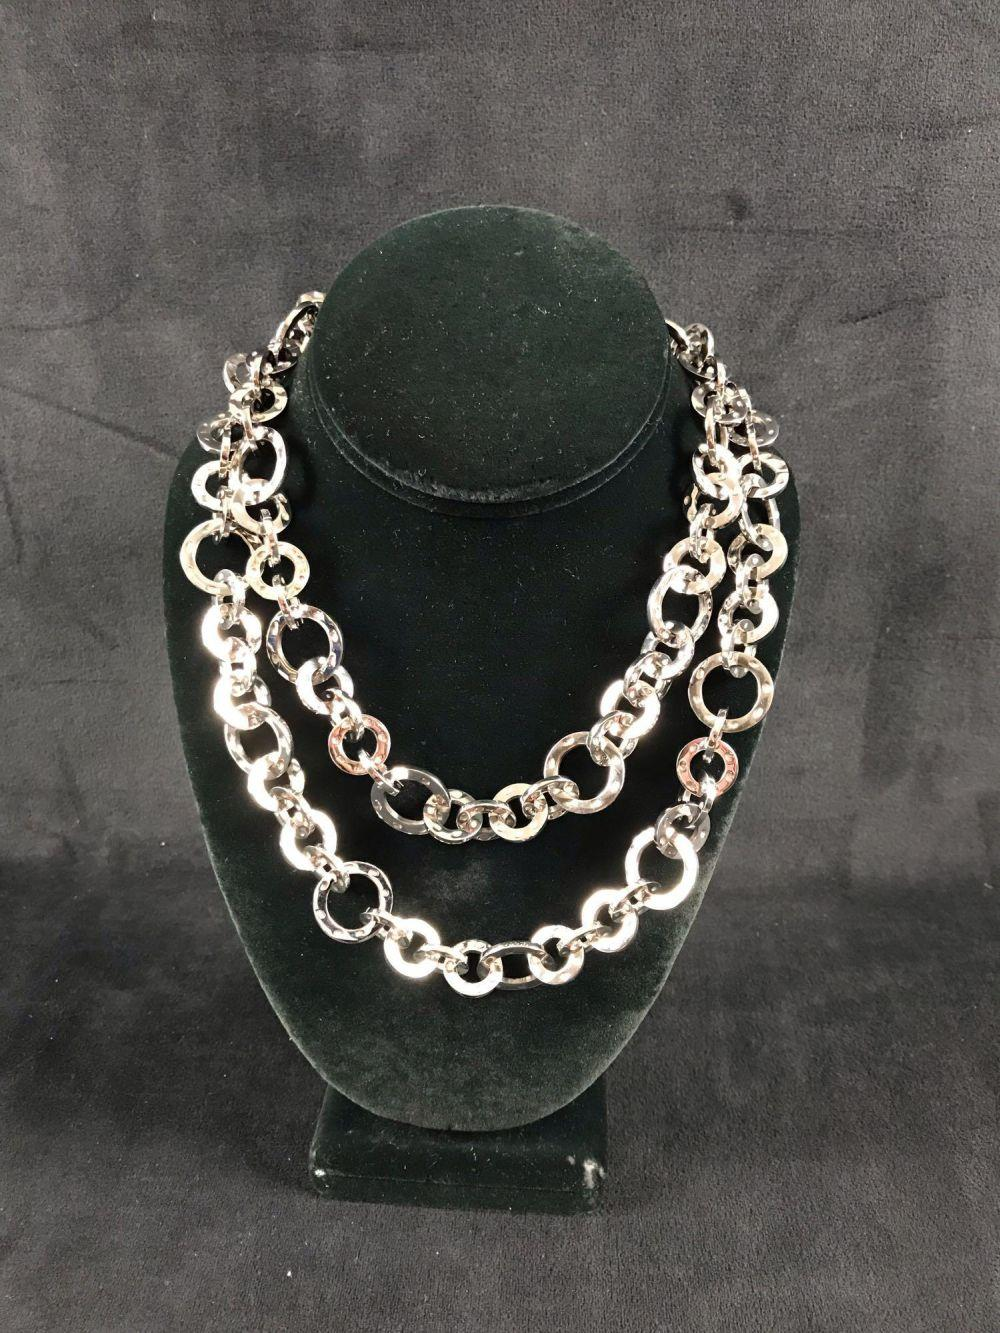 Lot 508: Stainless Steal Chain Necklace